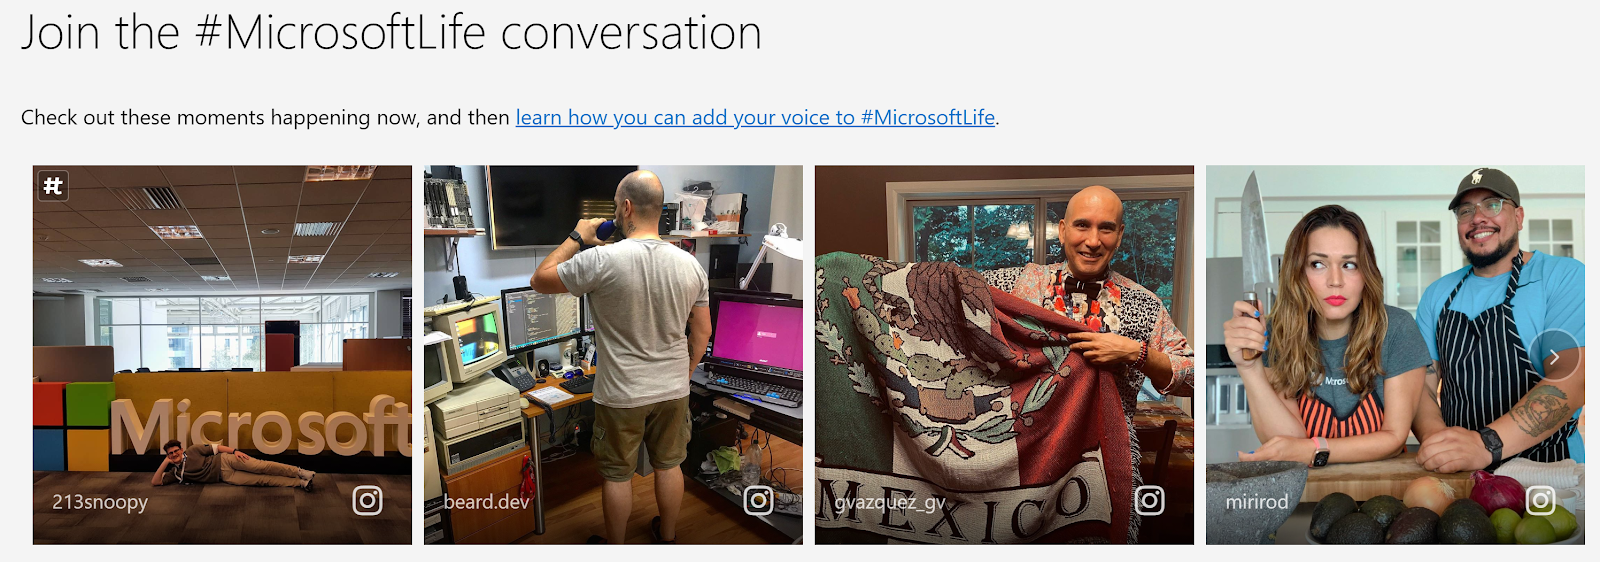 Microsoft Employee Social Content on Website